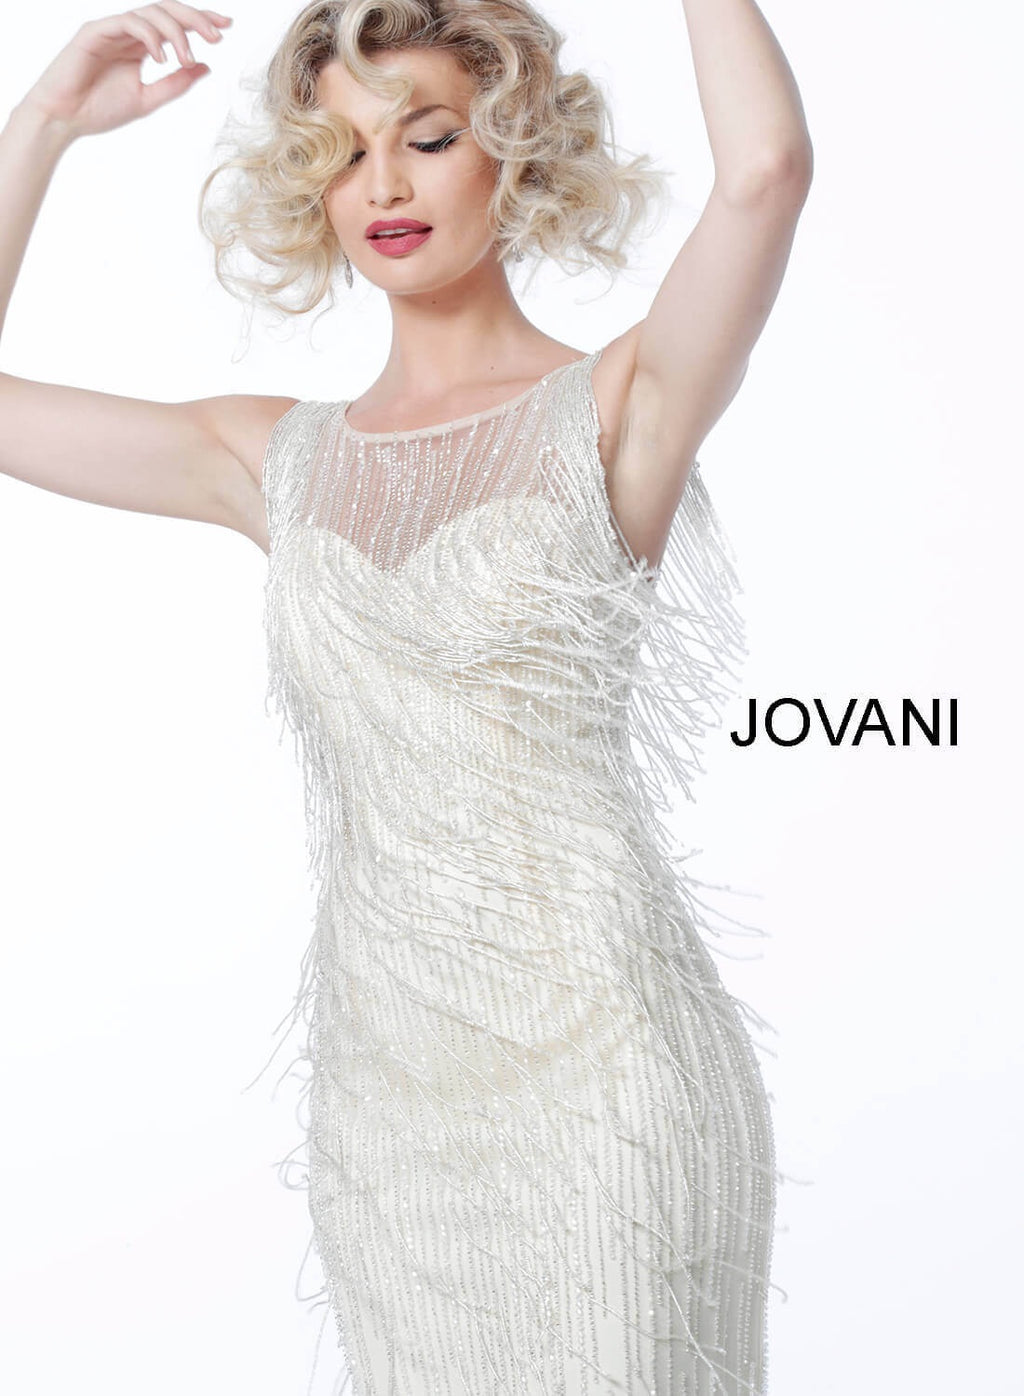 JOVANI 62678 Sleeveless Fringe Evening Dress - CYC Boutique